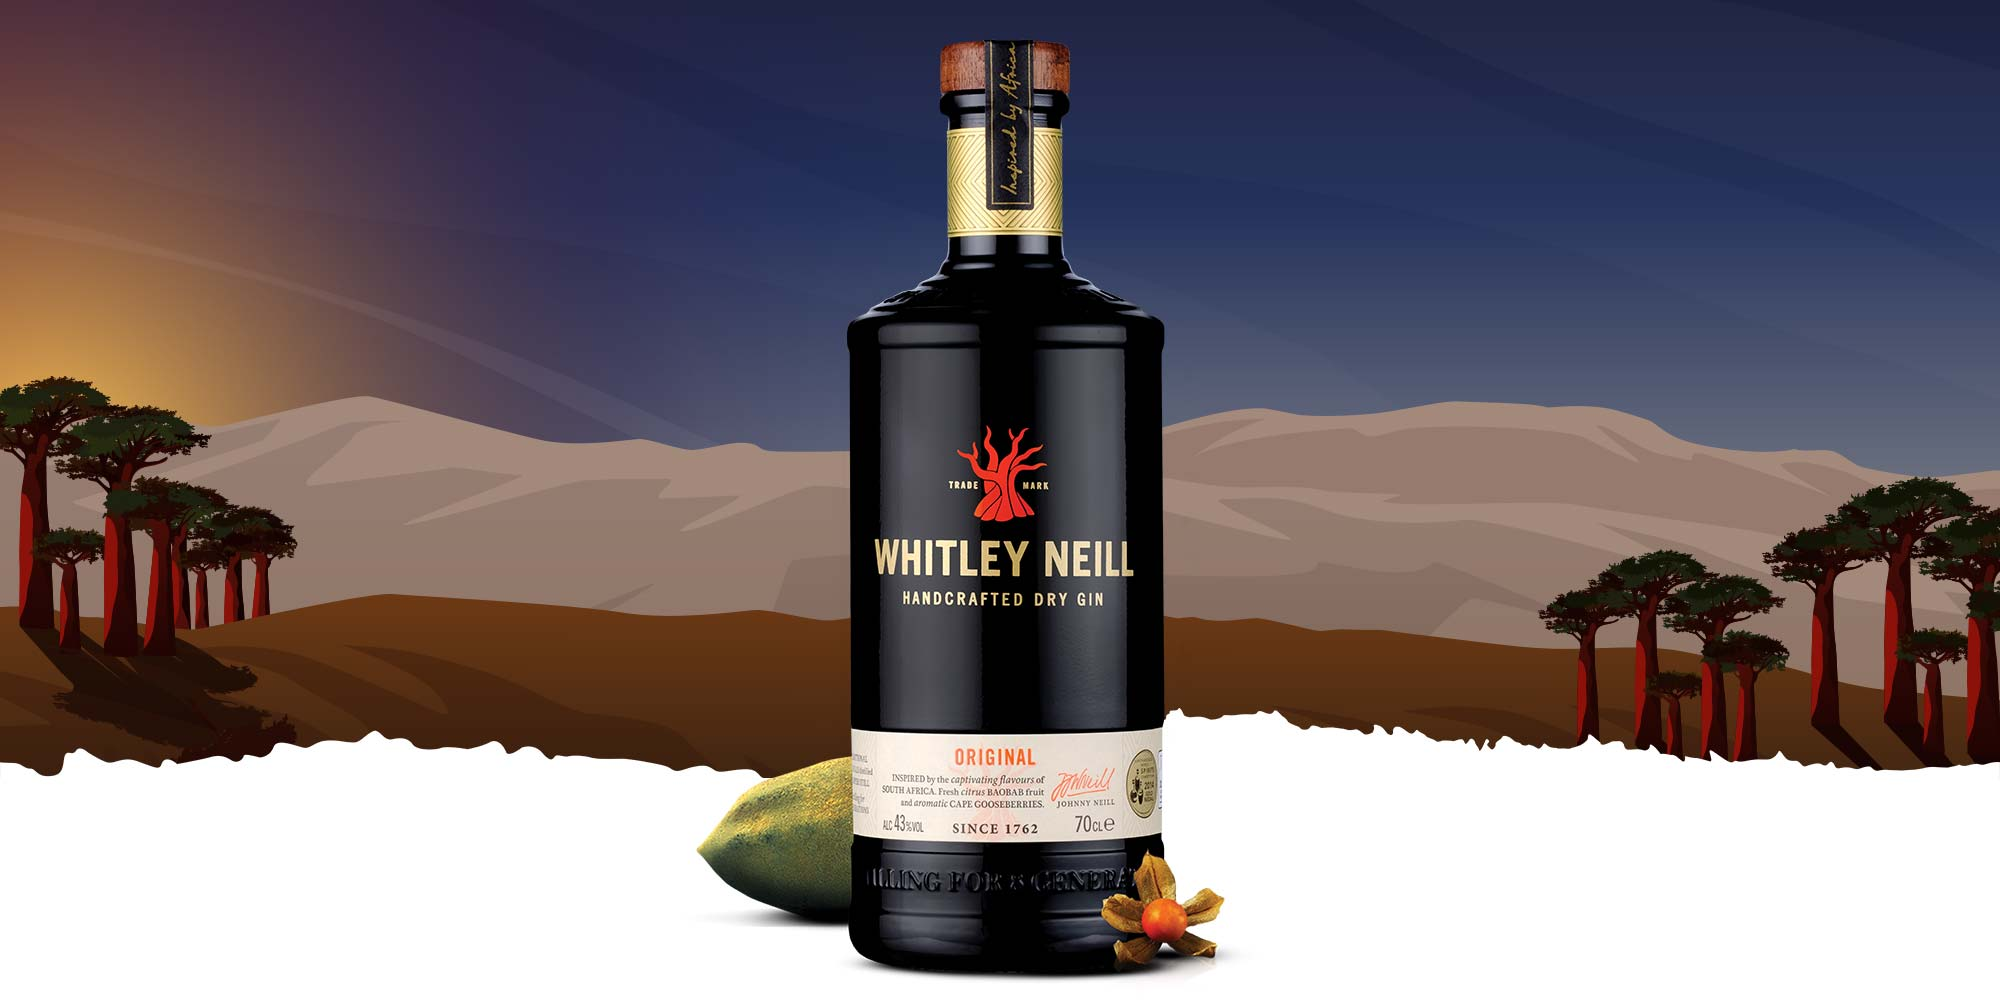 Whitley Neill Original bottle on African sunset